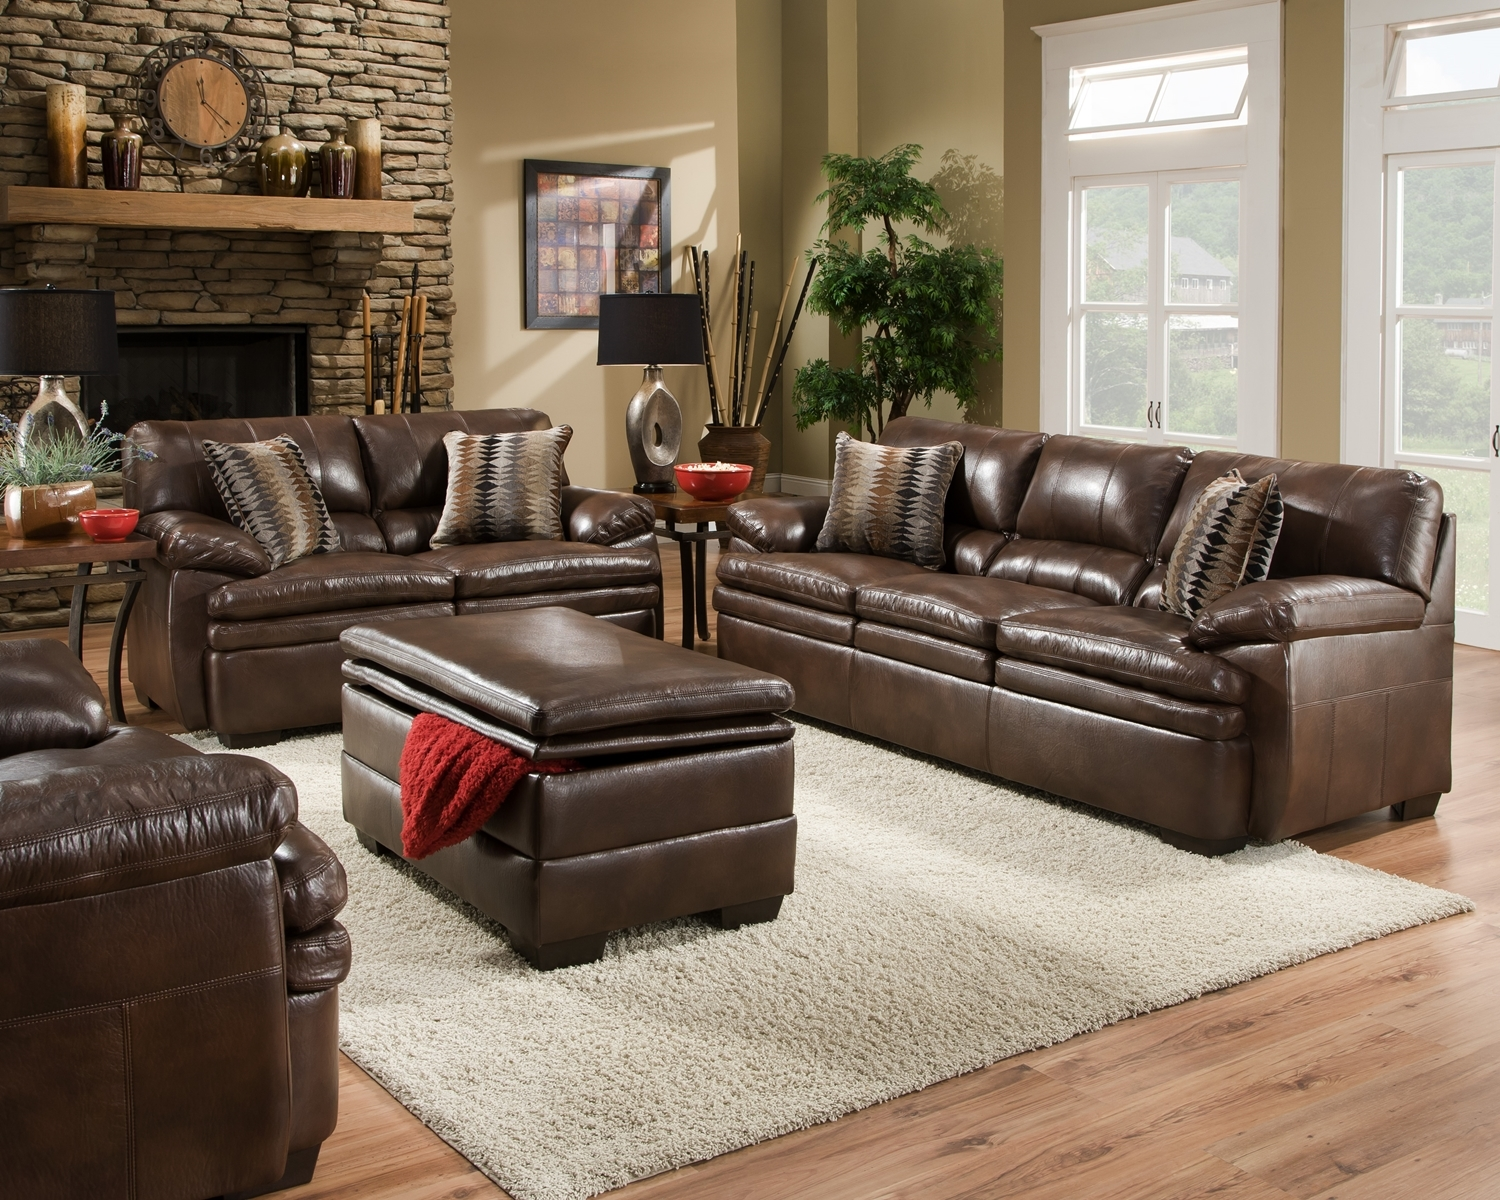 bonded leather sofa set casual living room furniture w accent pillows